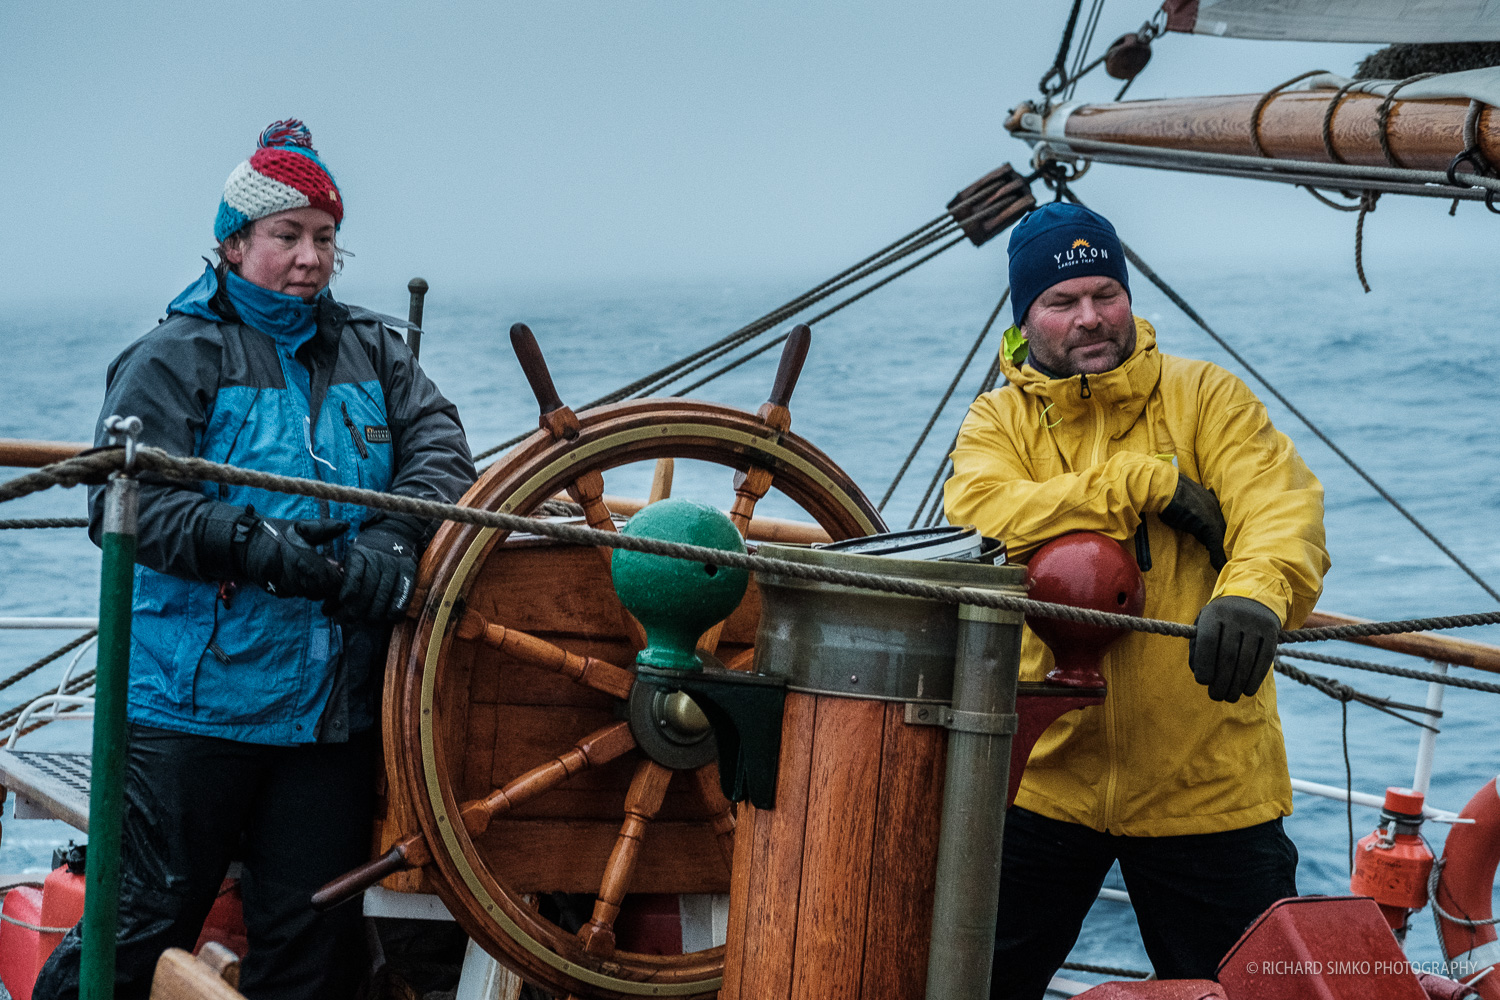 Frits and Merel on duty confidently steering Europa towards Antarctic shores.